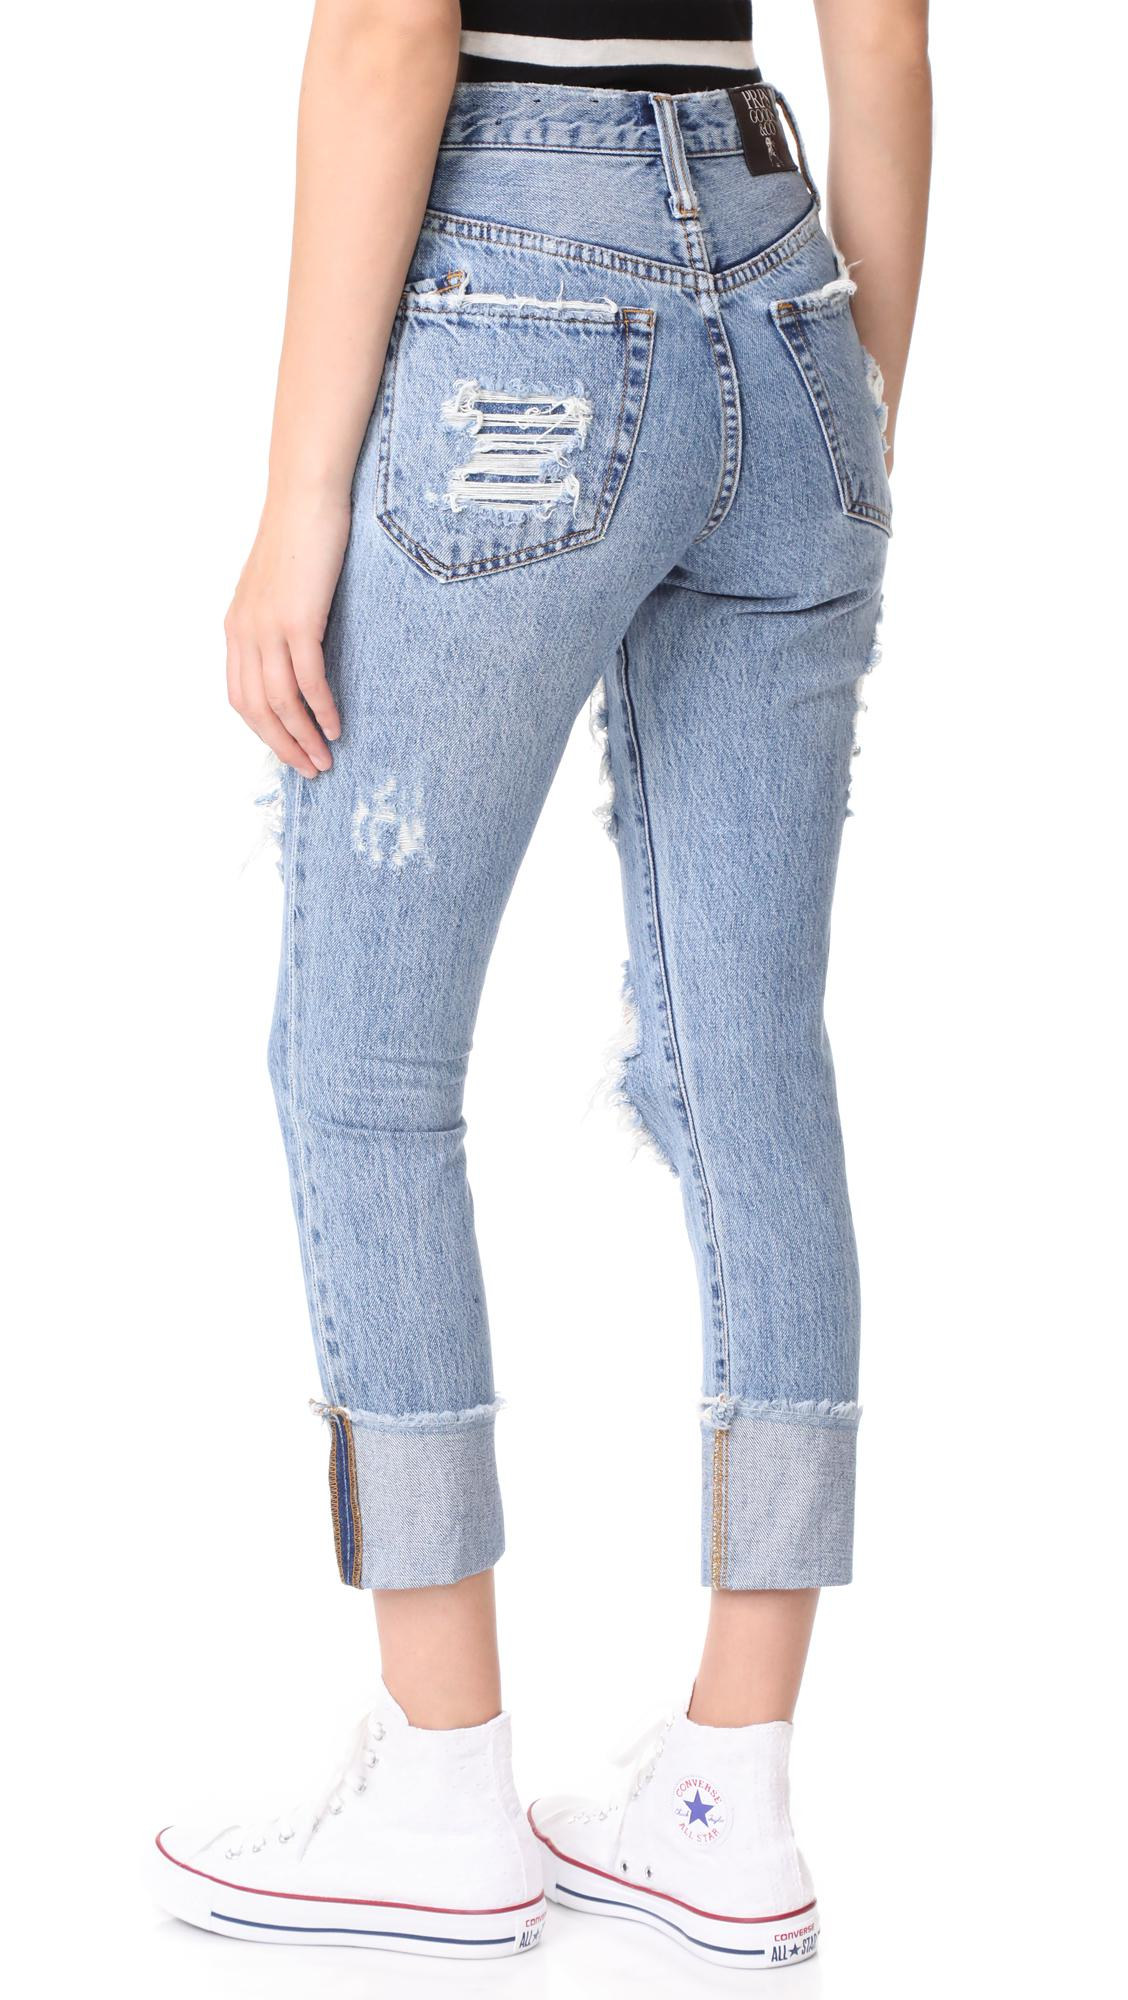 lyst prps amx high waist boyfriend jeans in blue. Black Bedroom Furniture Sets. Home Design Ideas